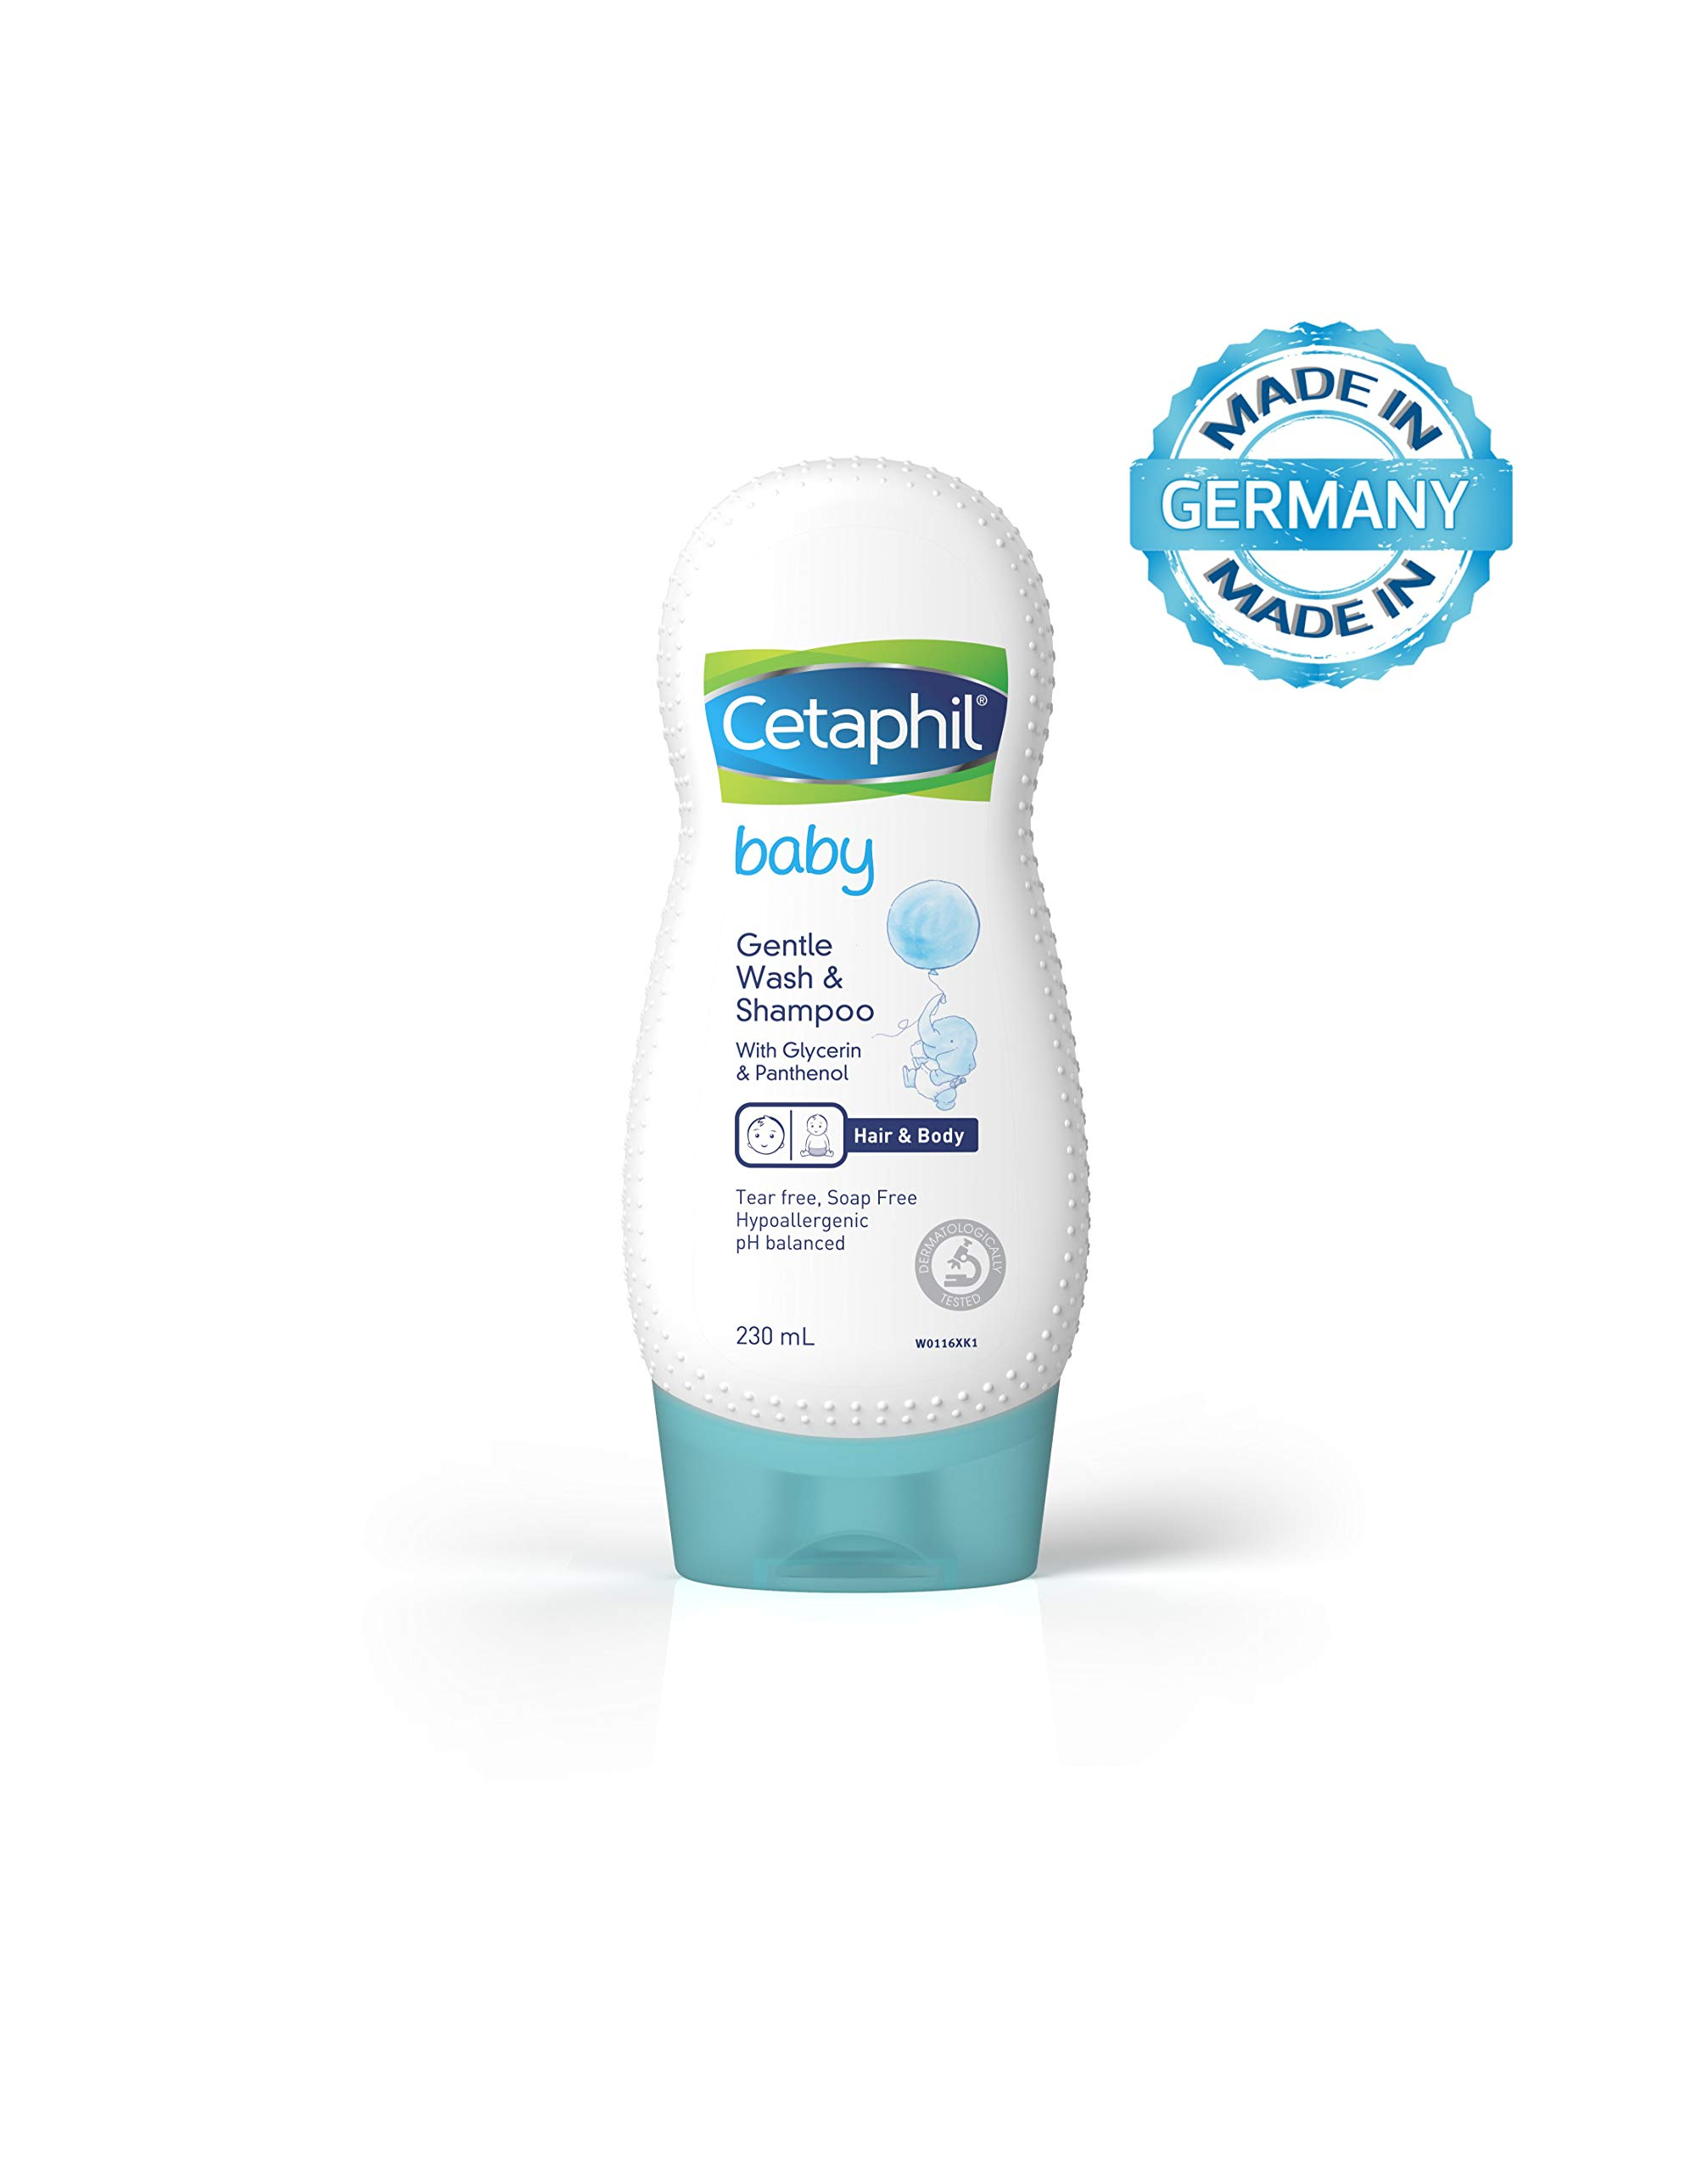 Cetaphil Baby Shampoo and Wash, 230 ml